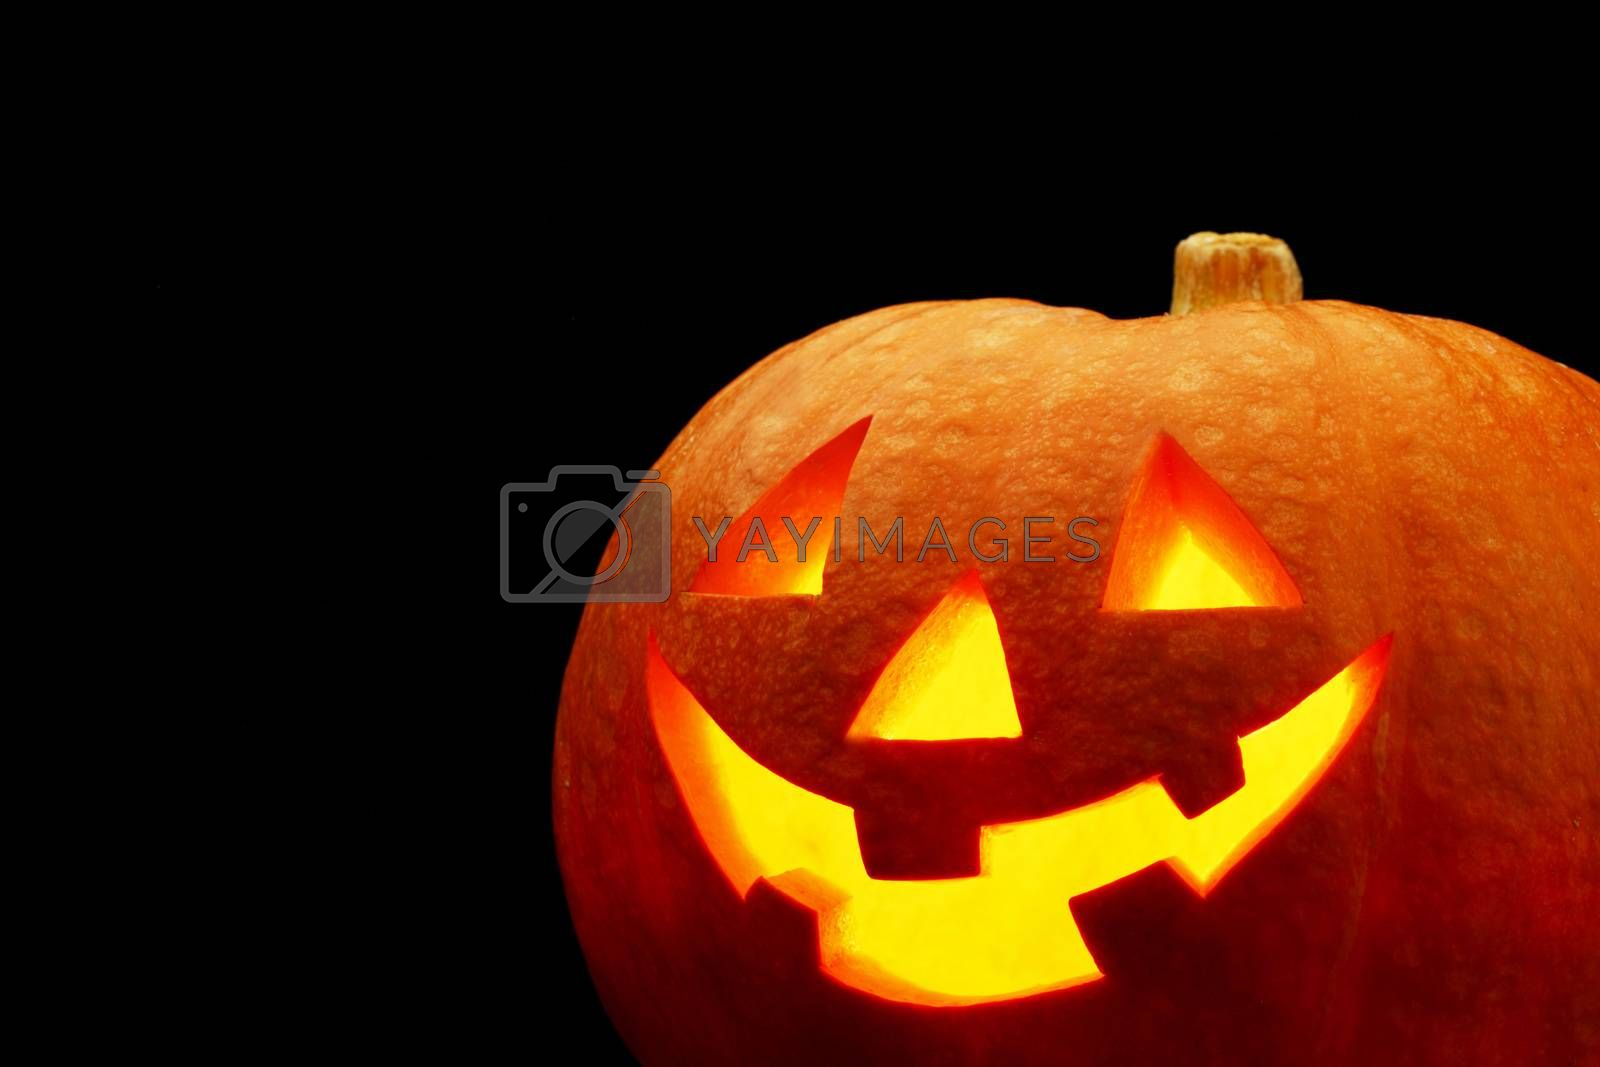 Glowing Halloween pumpkin isolated on black background